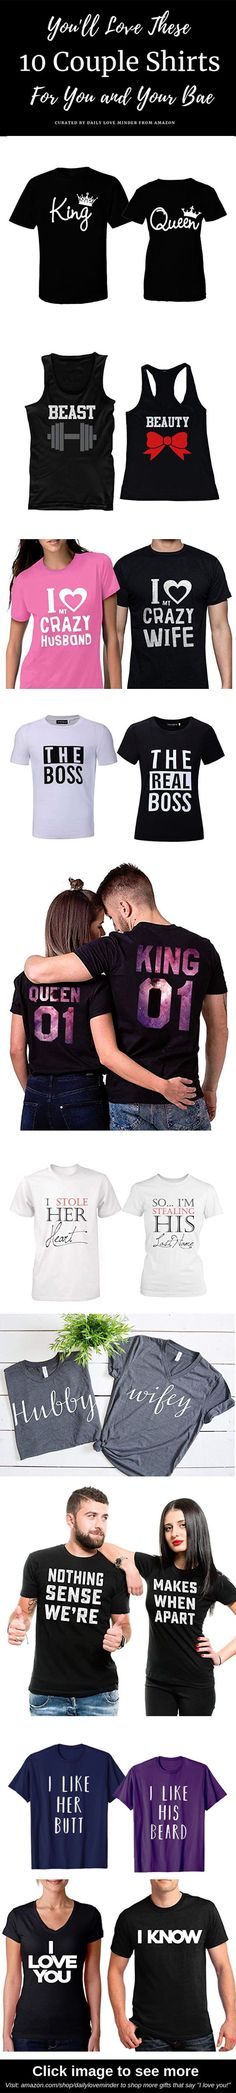 cedff31342027 Daily Love Minder's Amazon Page. Great Anniversary GiftsPerfect CoupleFunny  RelationshipLove GiftsGifts For HimCouple ShirtsMatching ...